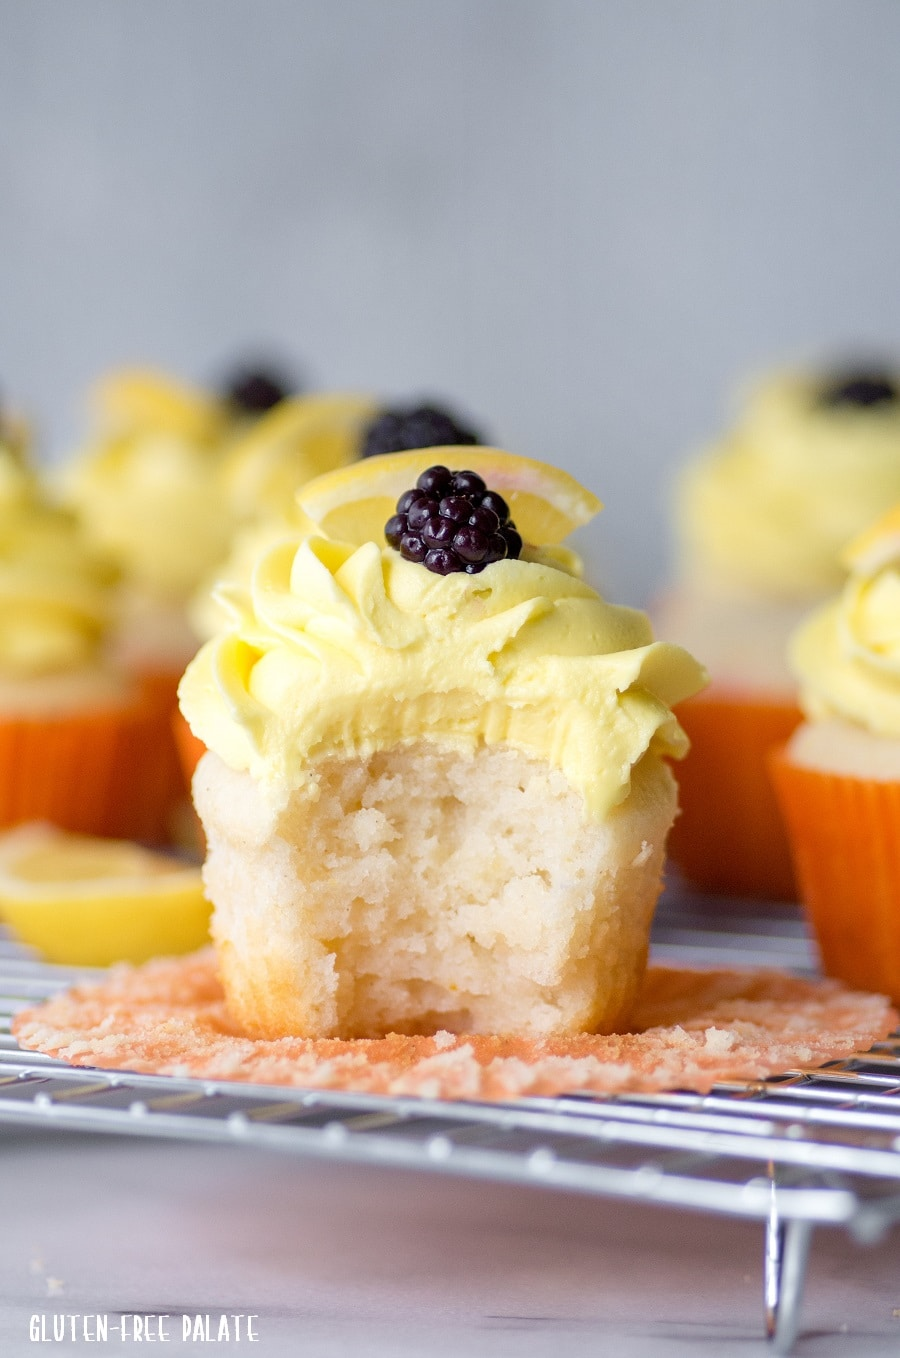 You are going to love this simple, from scratch, Gluten-Free Lemon Cupcake. This bakery-style cupcake is tender and has the perfect amount of lemon.